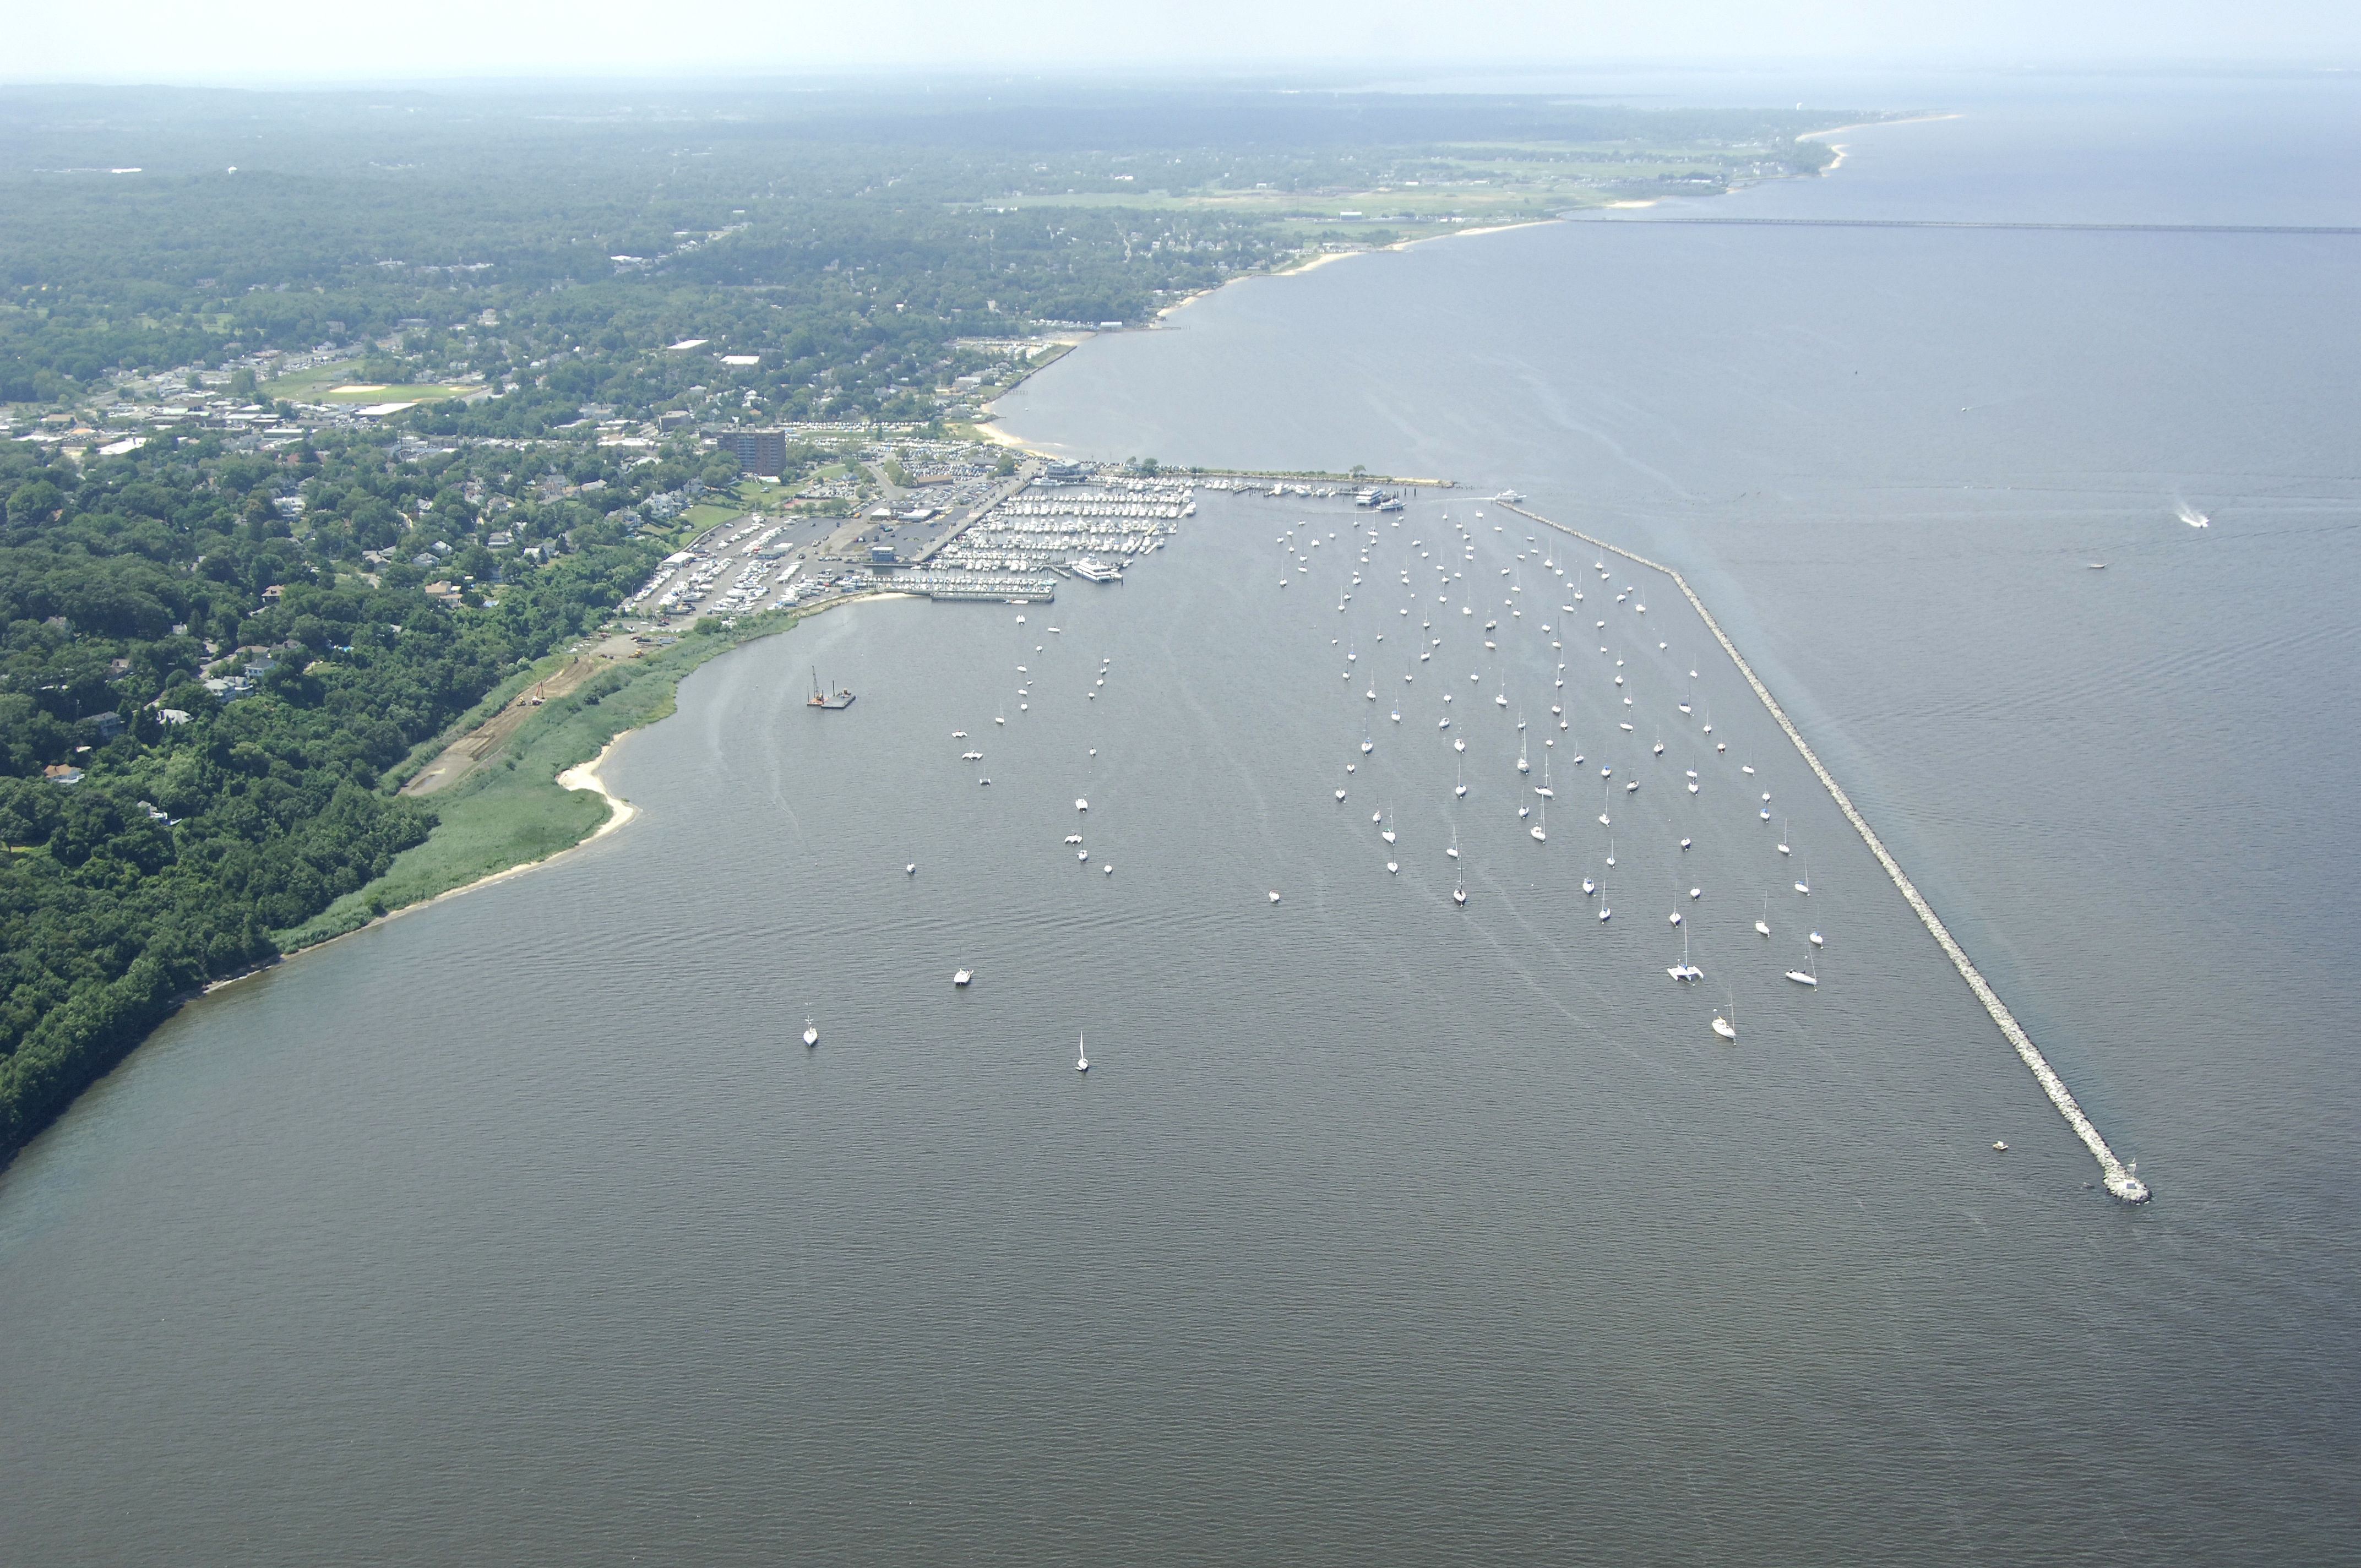 Atlantic highlands inlet in atlantic highlands nj united states atlantic highlands inlet atlantic highlands inlet atlantic highlands inlet nvjuhfo Image collections